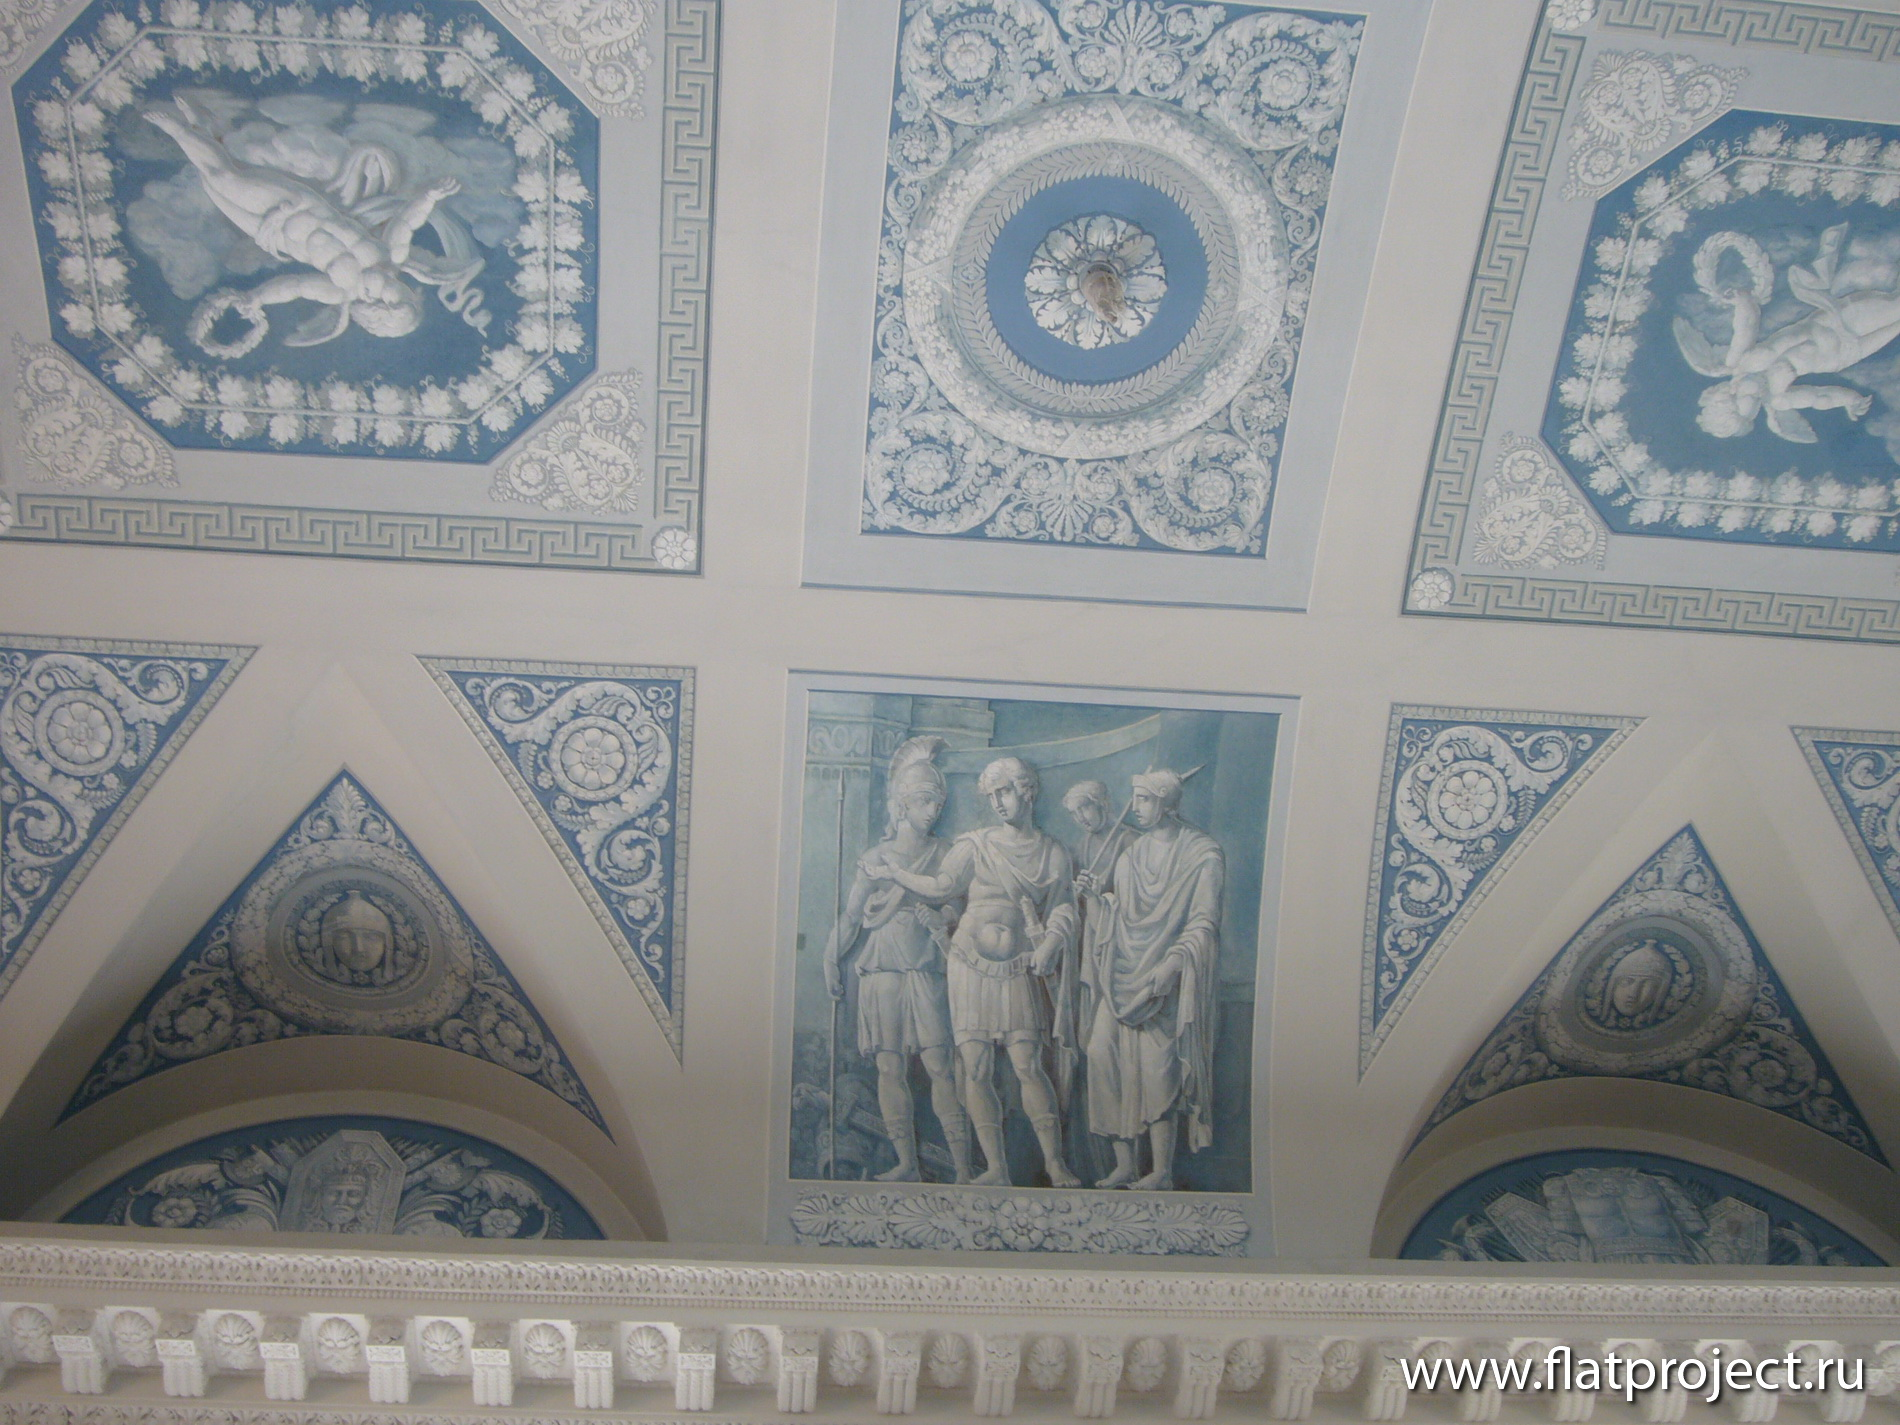 The State Russian museum interiors – photo 16